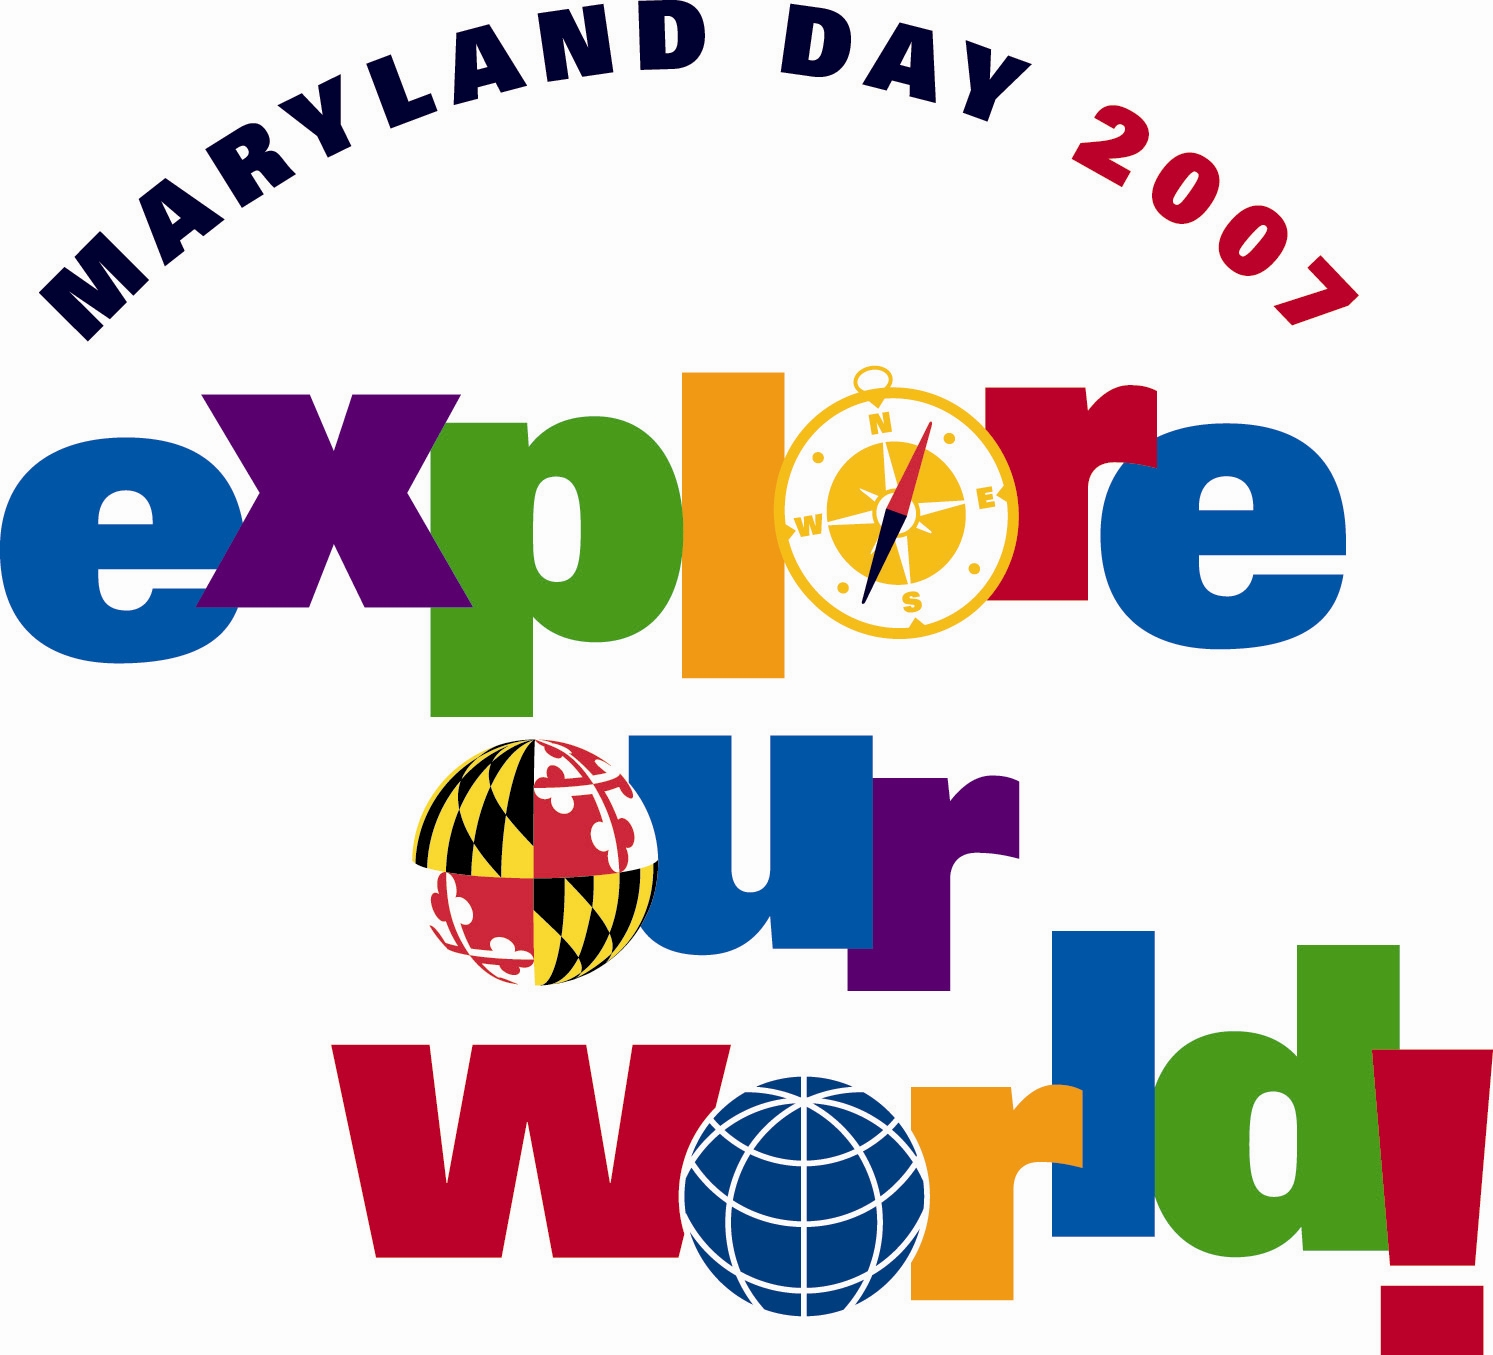 MD Day 2007 logo